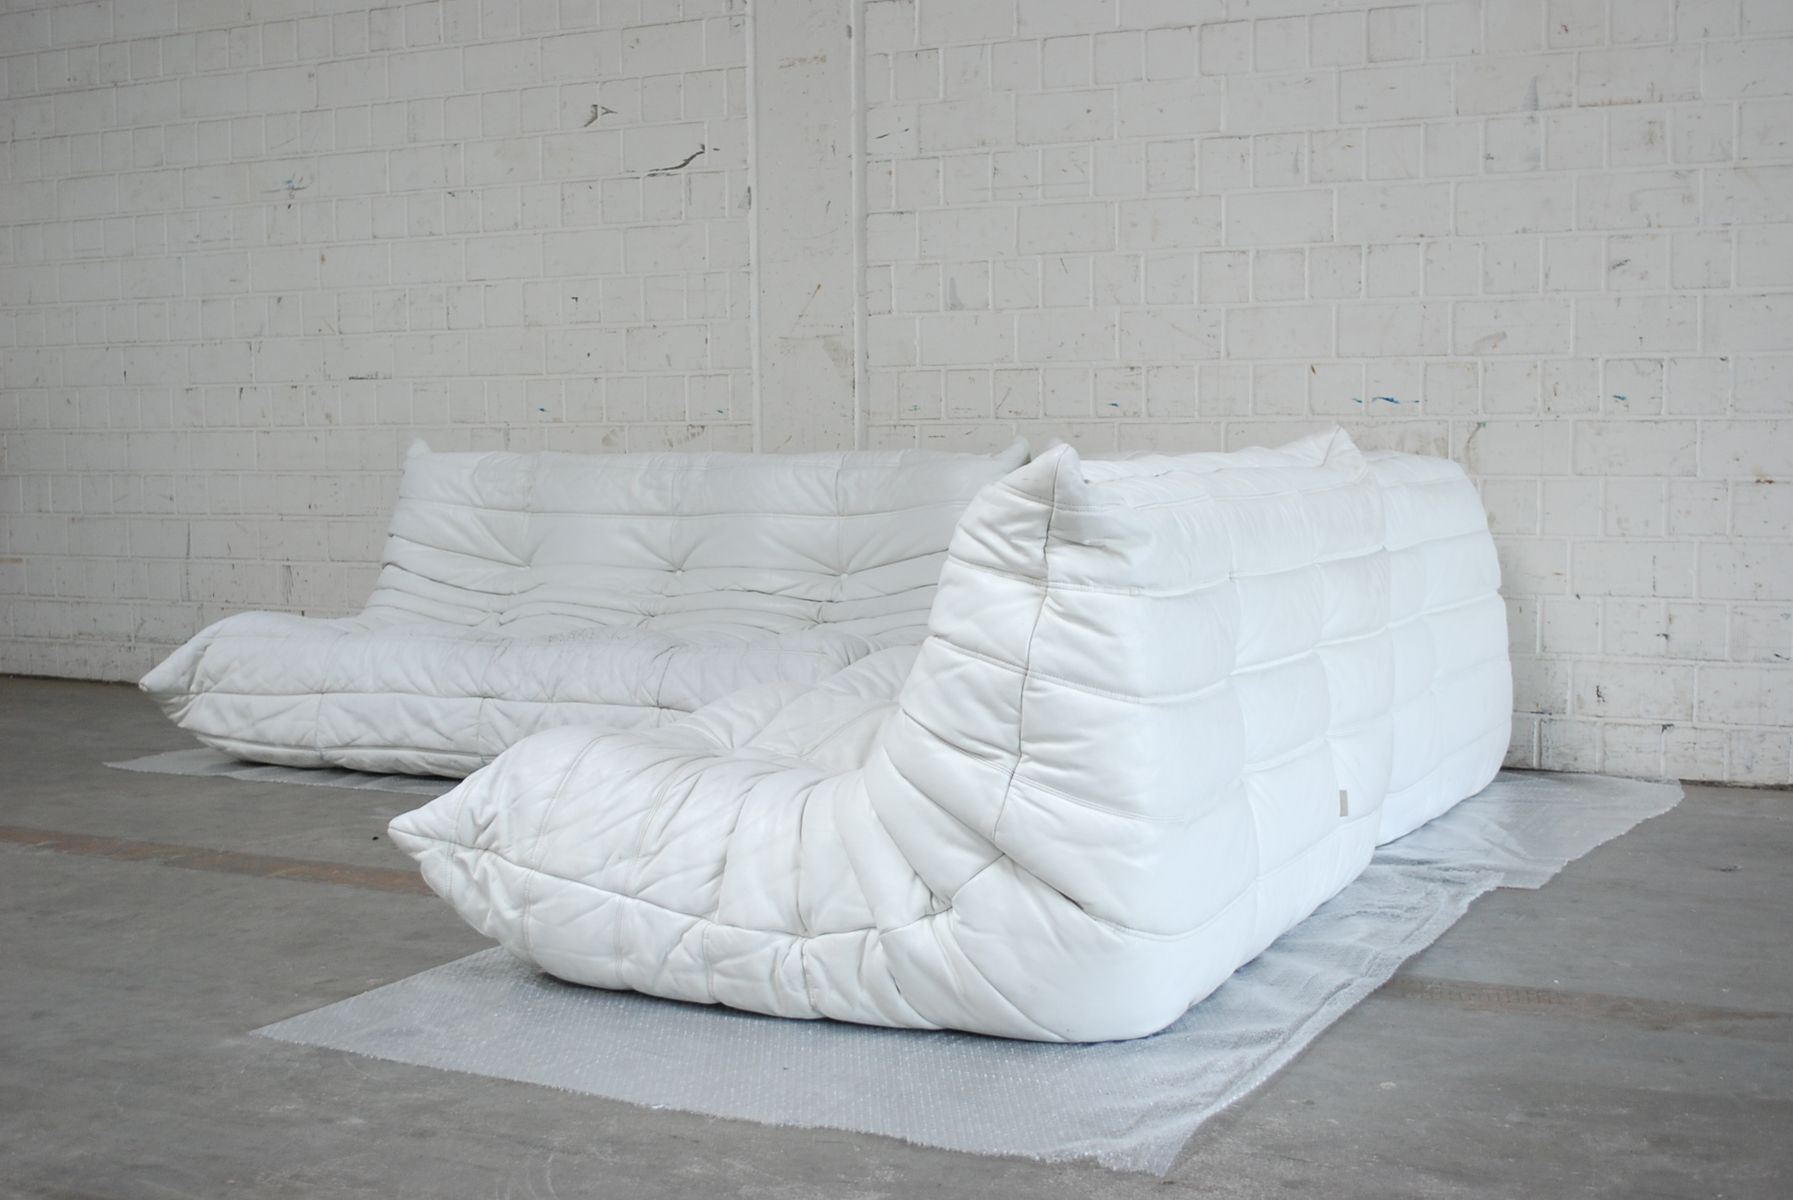 White togo modular leather sofa from ligne roset for sale for Housse togo ligne roset